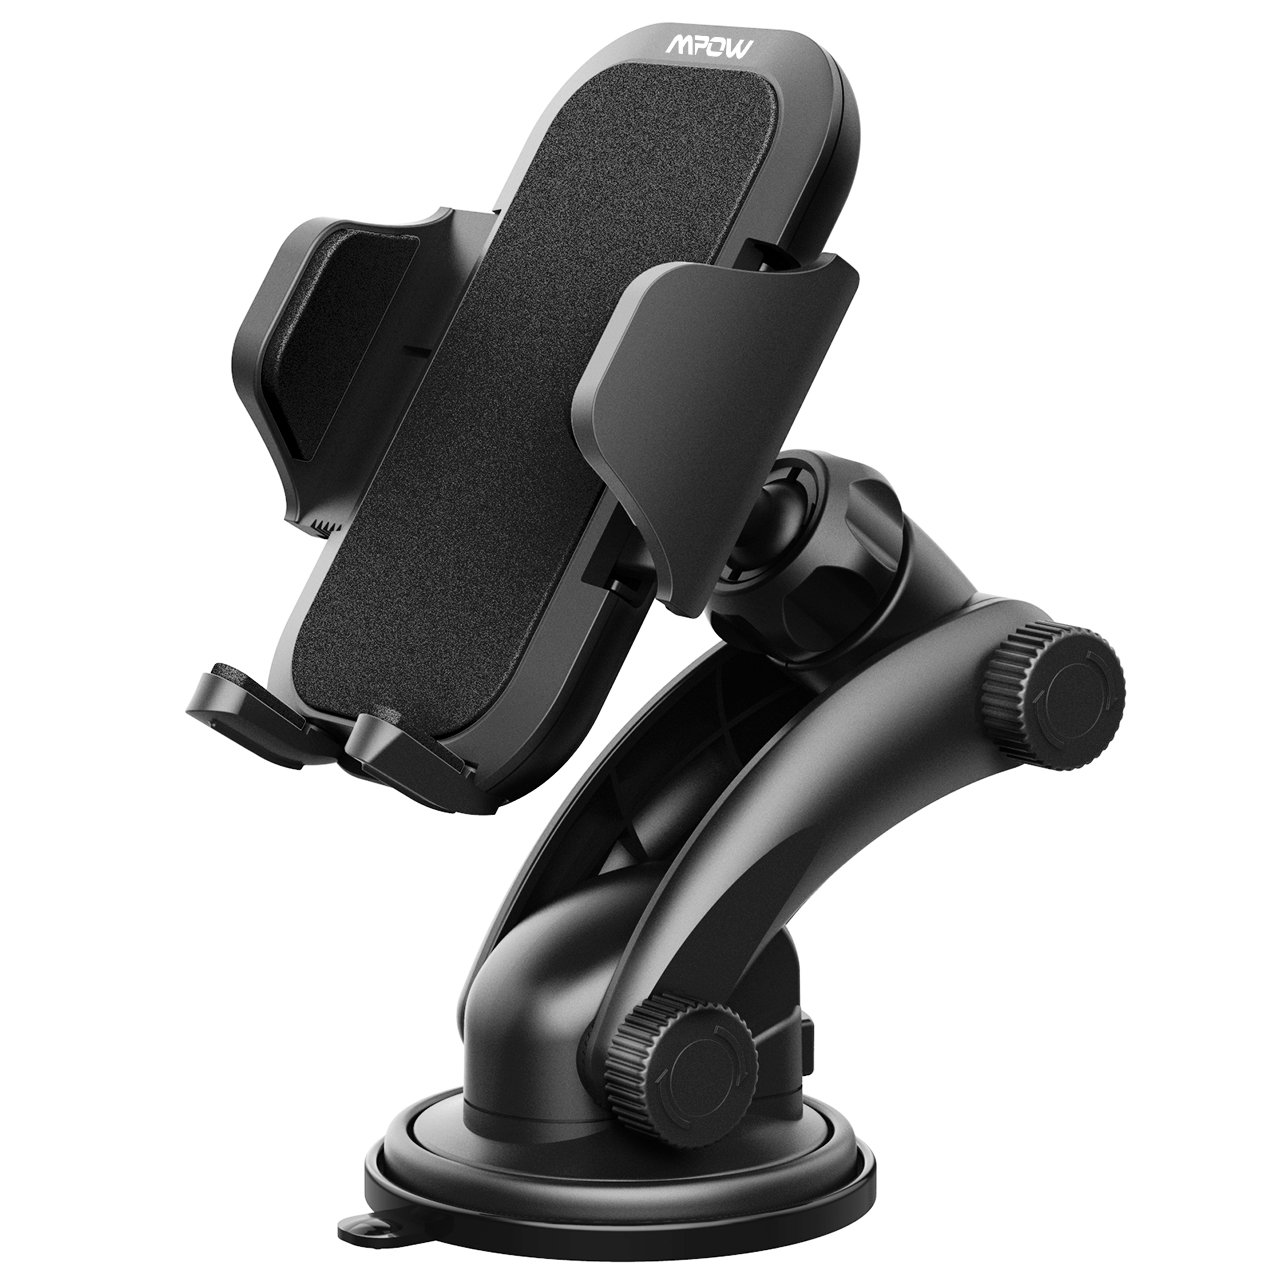 Mpow Car Mount Holder, Universal Dashboard Car Phone Mount Holder/w One-Touch Design&Washable Strong Sticky Gel Pad for iPhone X/8/8Plus7/7P/6s/6P/5S, Galaxy S5/S6/S7/S8, Google, LG, Huawei and etc